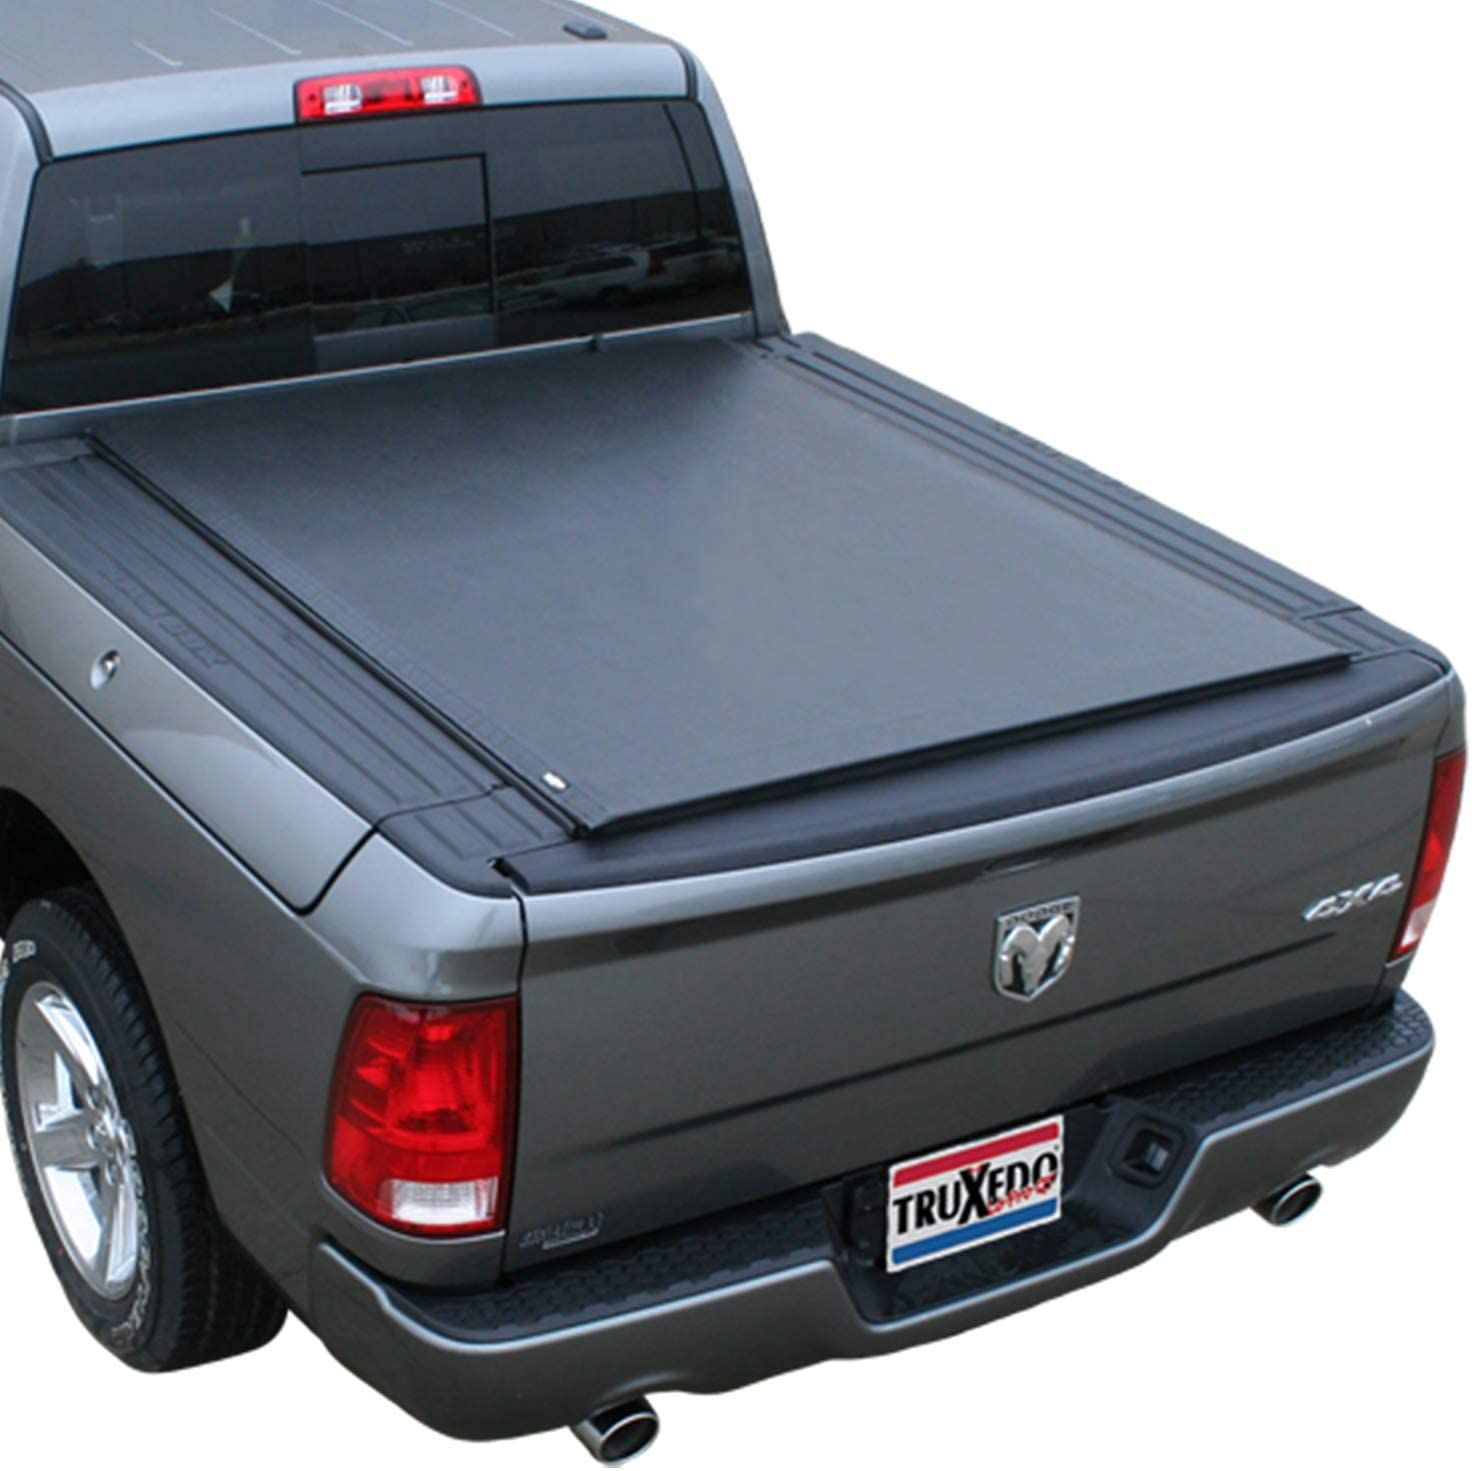 Truxedo Lo Pro Soft Roll Up Truck Bed Tonneau Cover 547901 Fits 2012 18 2019 Ram 1500 2500 3500 W Rambox 6 4 Bed In 2021 Tonneau Cover Truck Bed Rambox